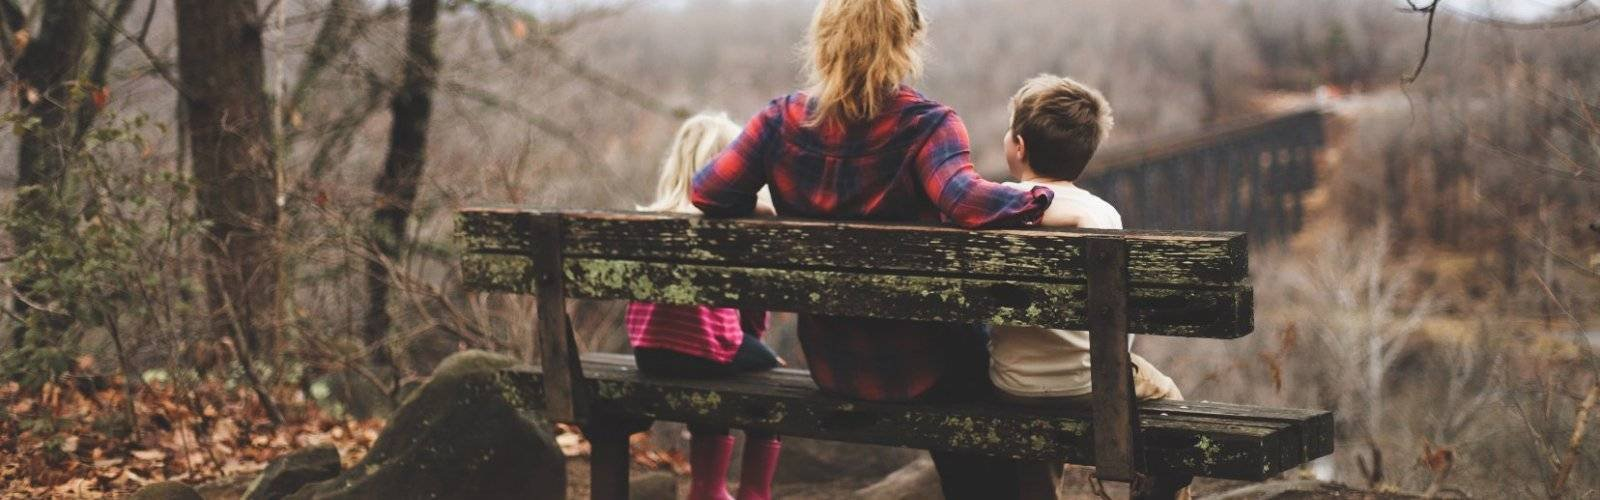 Photo credit: Benjamin Manley. A woman wearing flannel sits on a bench with two young children, back to the viewer.